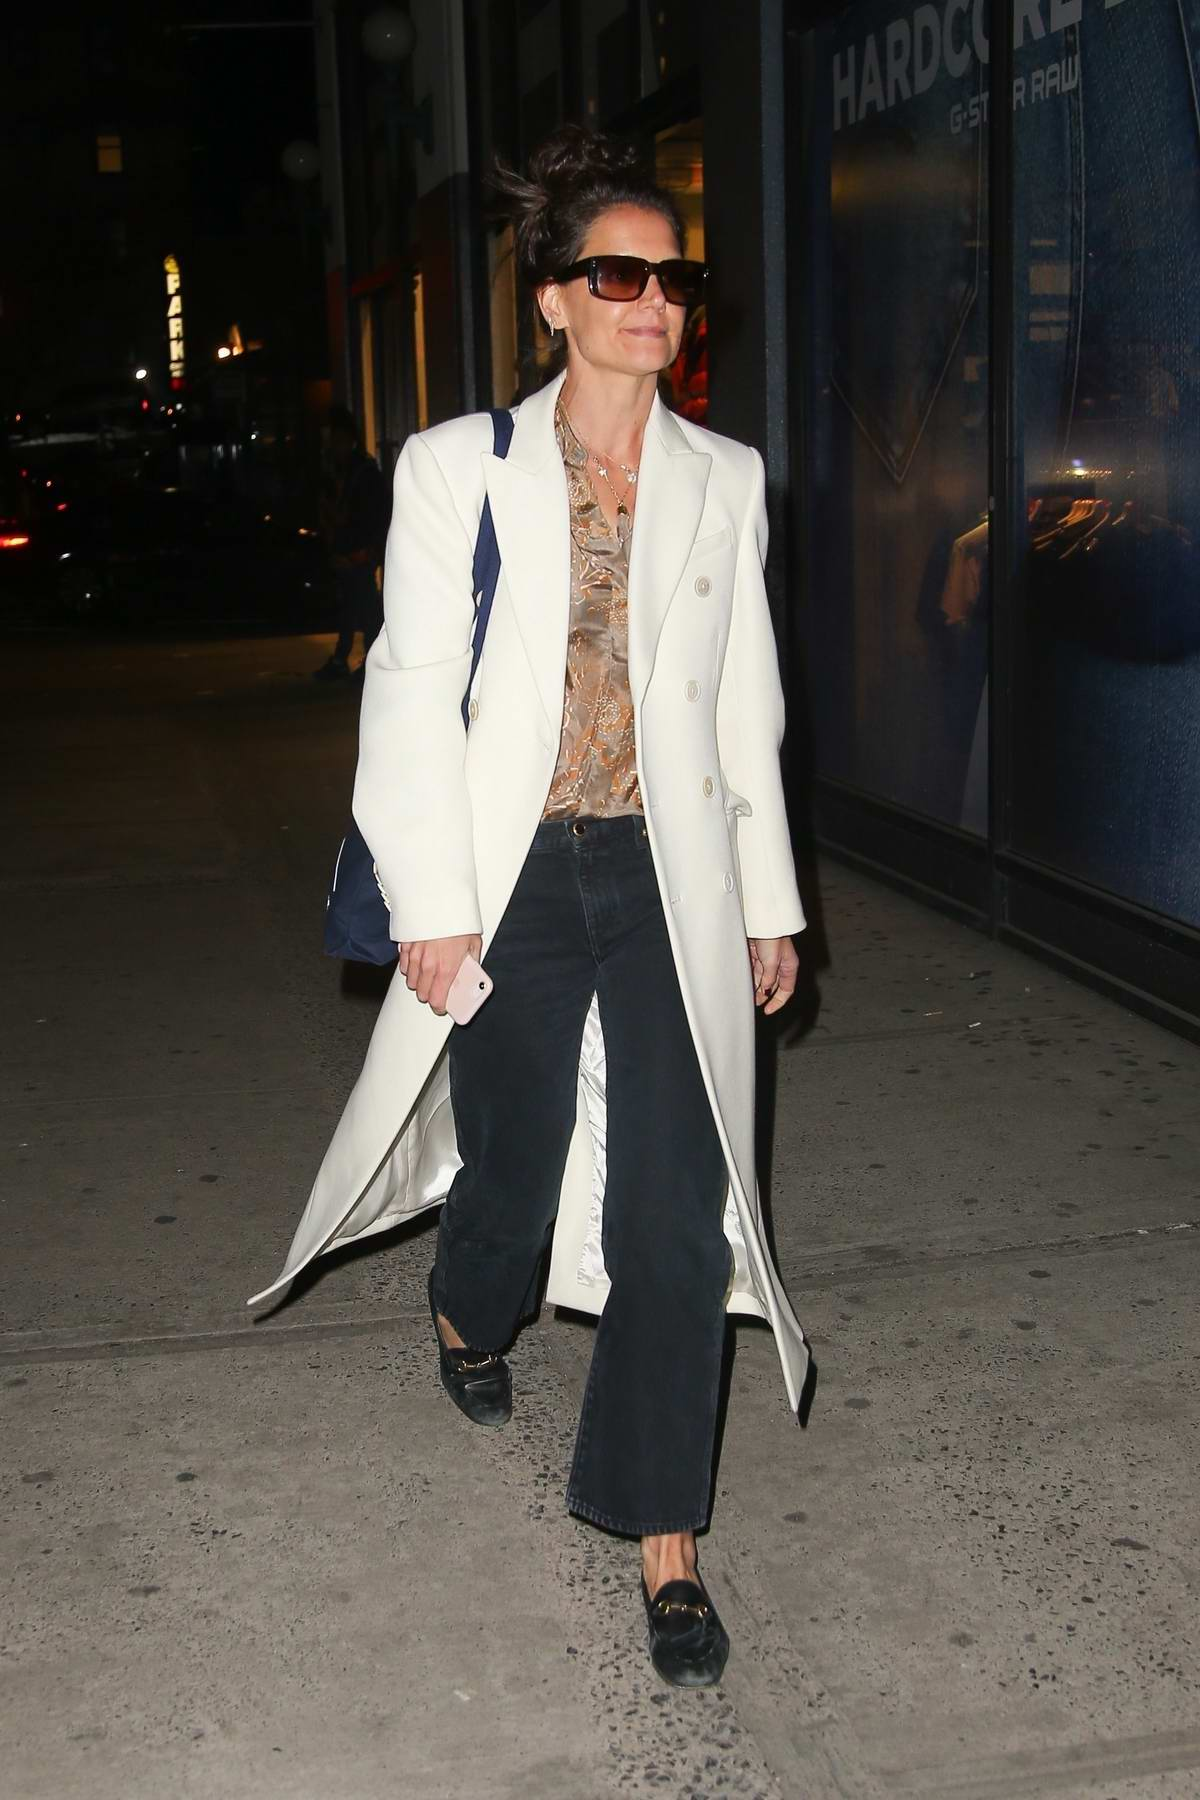 Katie Holmes wears a white long coat while out in New York City